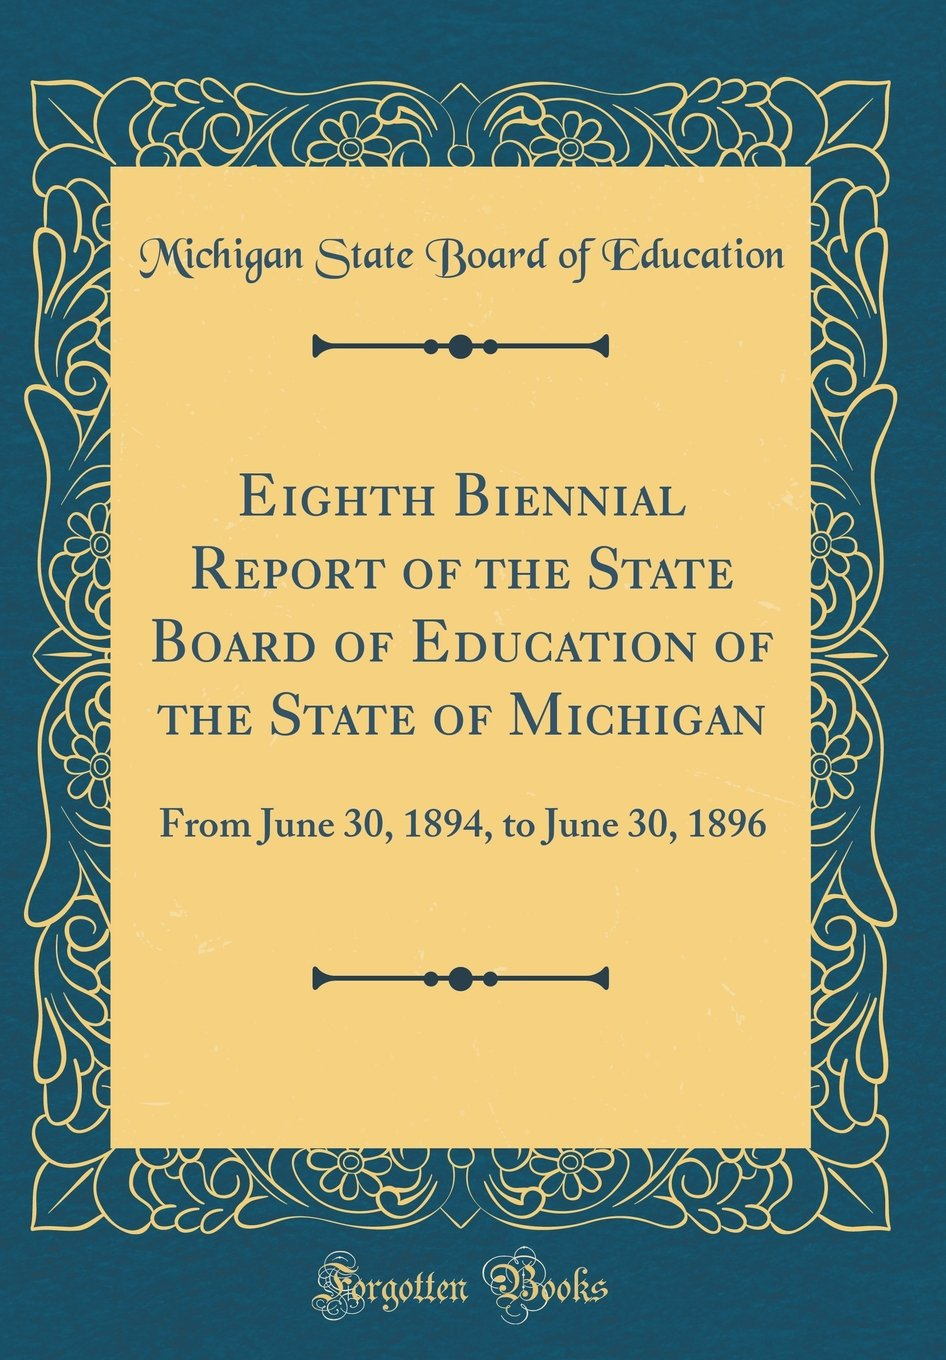 Read Online Eighth Biennial Report of the State Board of Education of the State of Michigan: From June 30, 1894, to June 30, 1896 (Classic Reprint) PDF